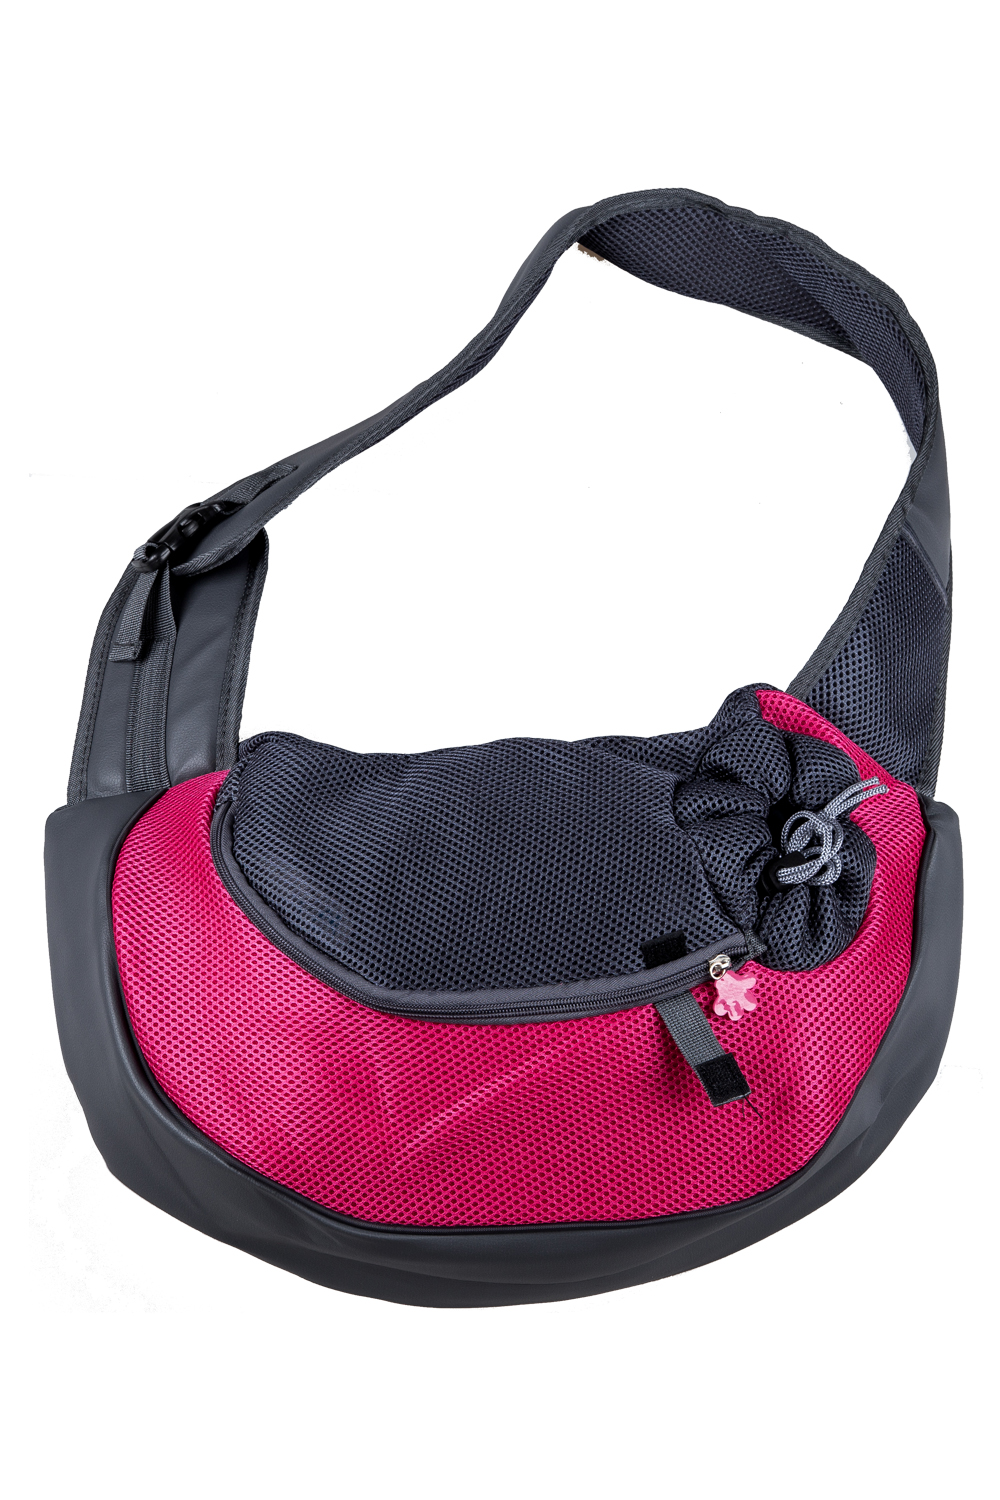 Pet Dog Cat Puppy Carry Travel Tote Shoulder Bag Purse Sling Hand Bag rose S ...